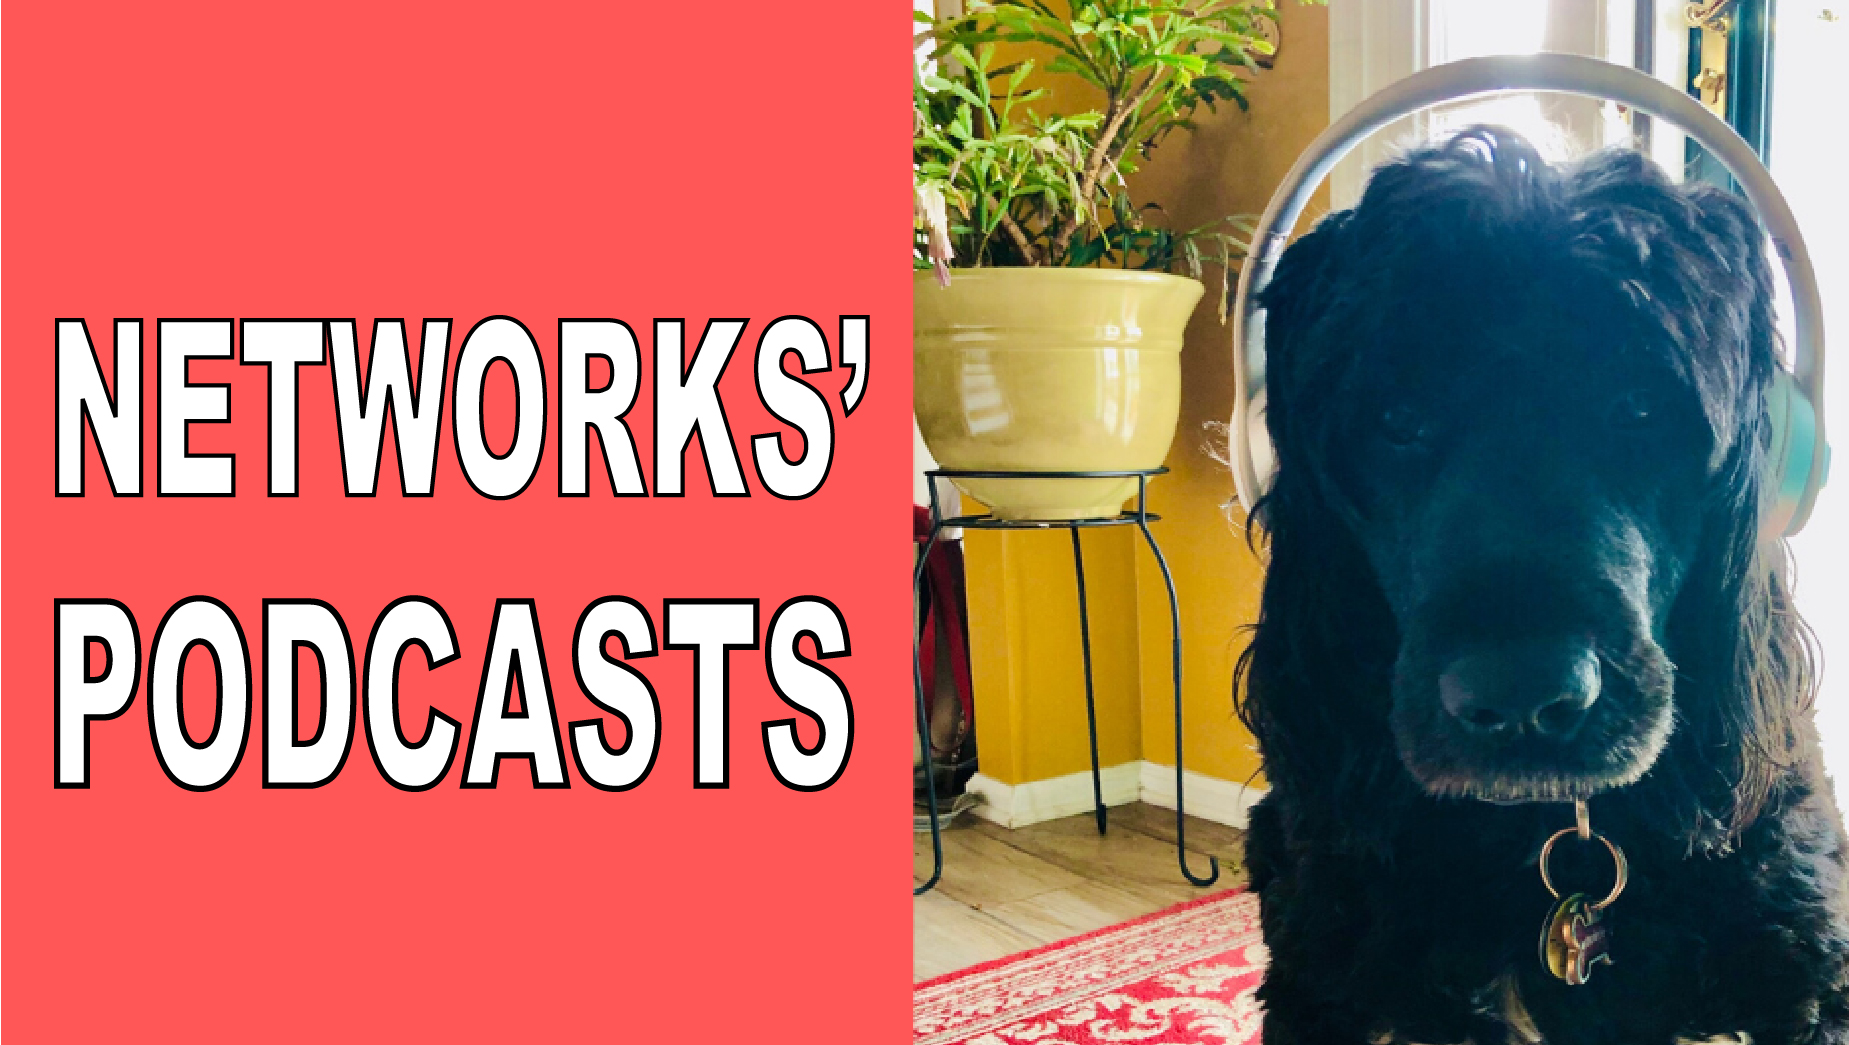 Networks Podcasts - image of dog wearing headphones